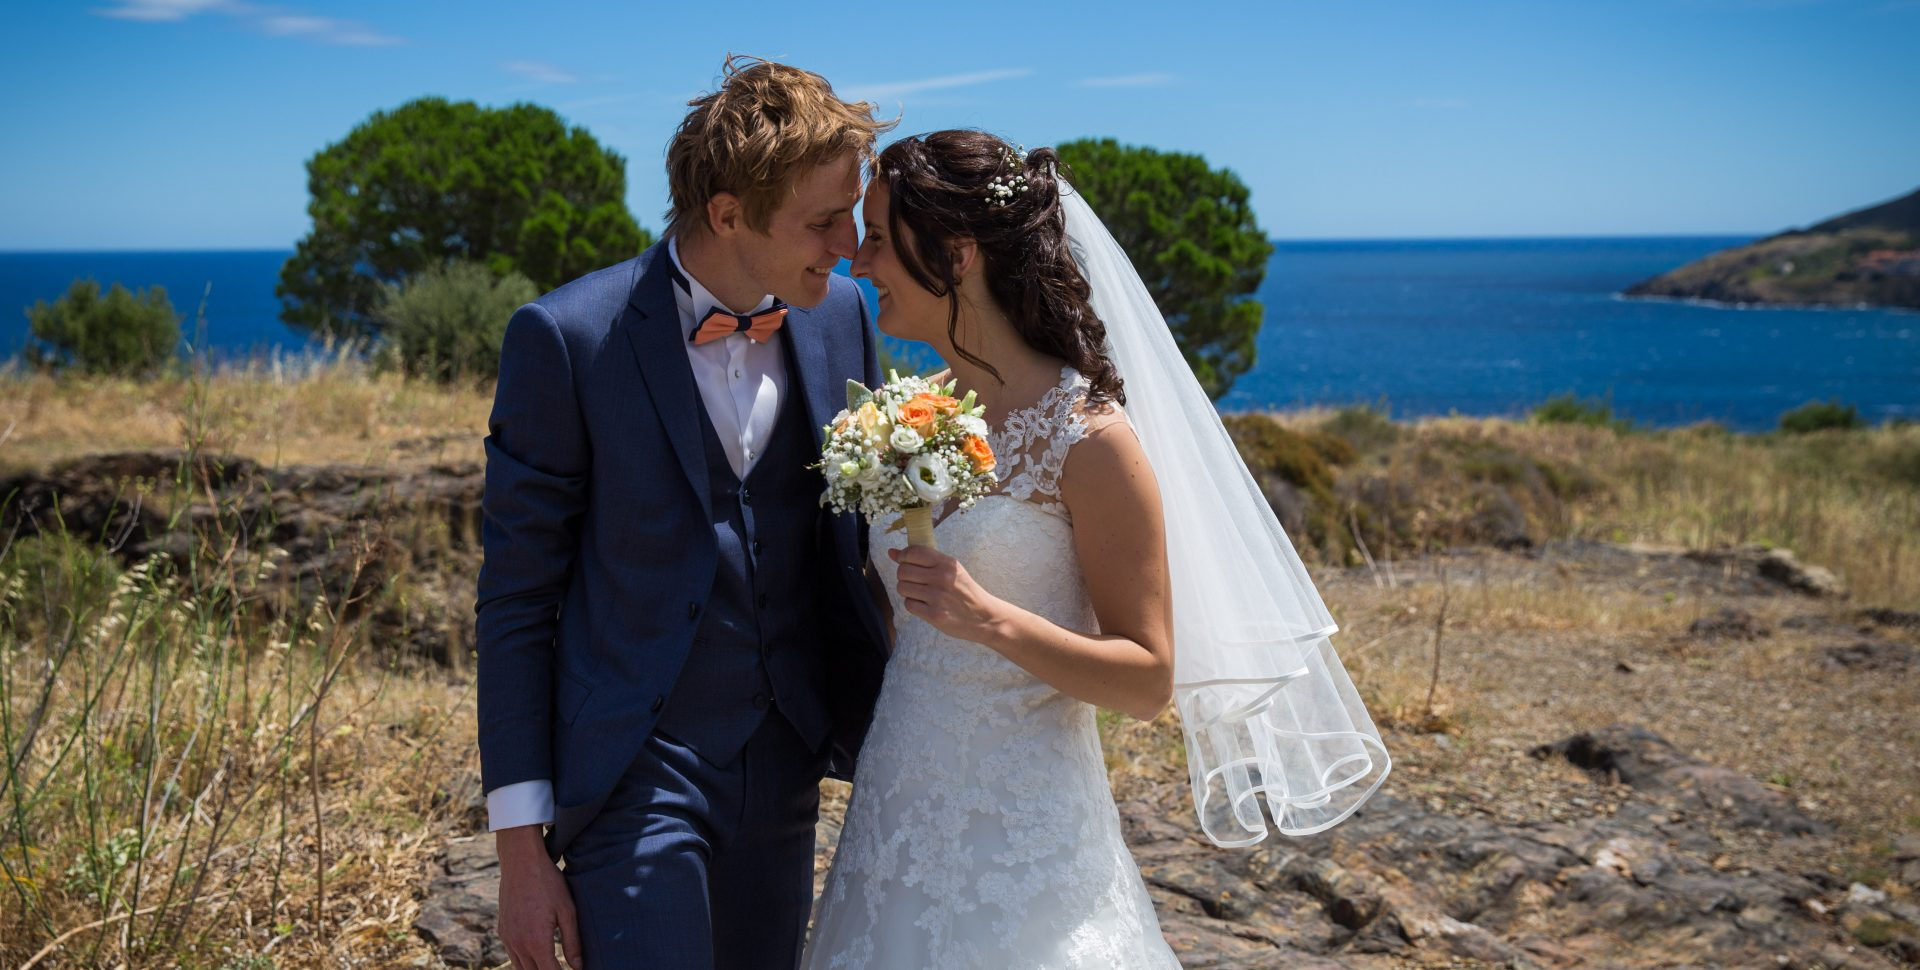 Faustine Joly Photographe mariage photos couple mer